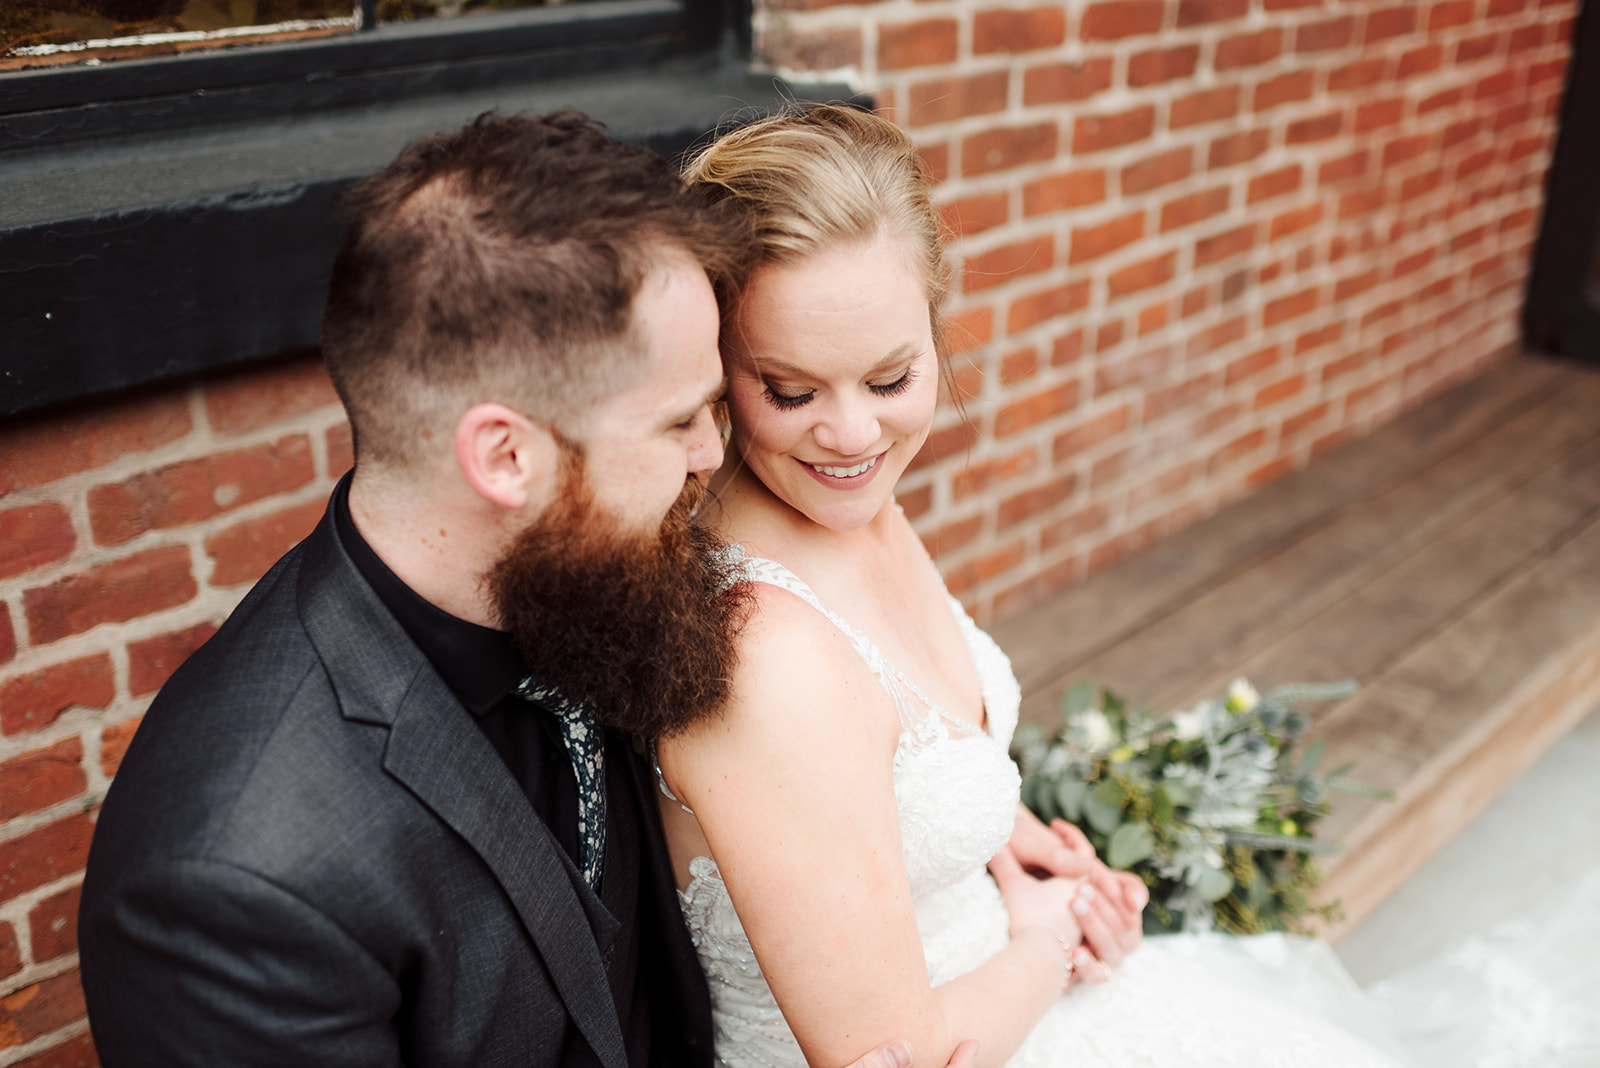 Nashville wedding at Clementine featured on Nashville Bride Guide